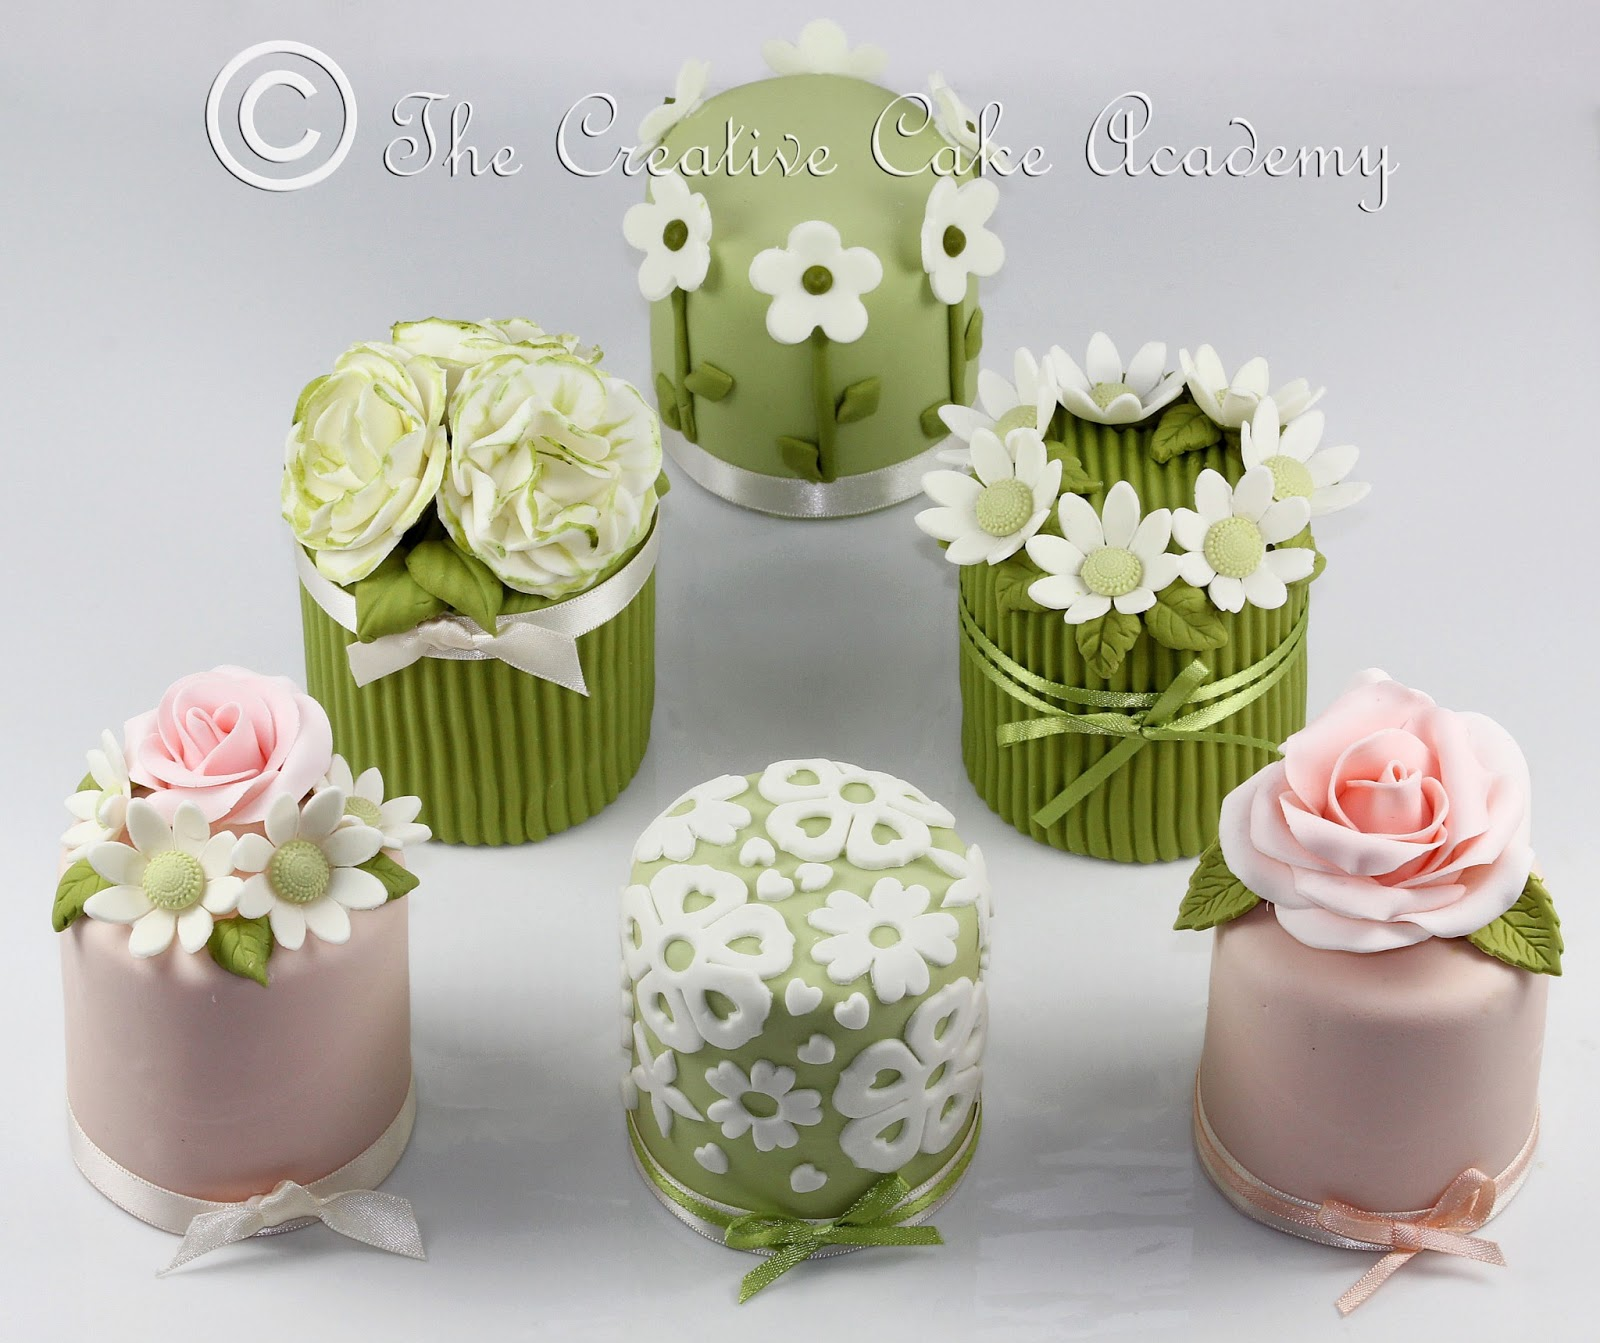 The Creative Cake Academy Mini Cakes Flower Collection